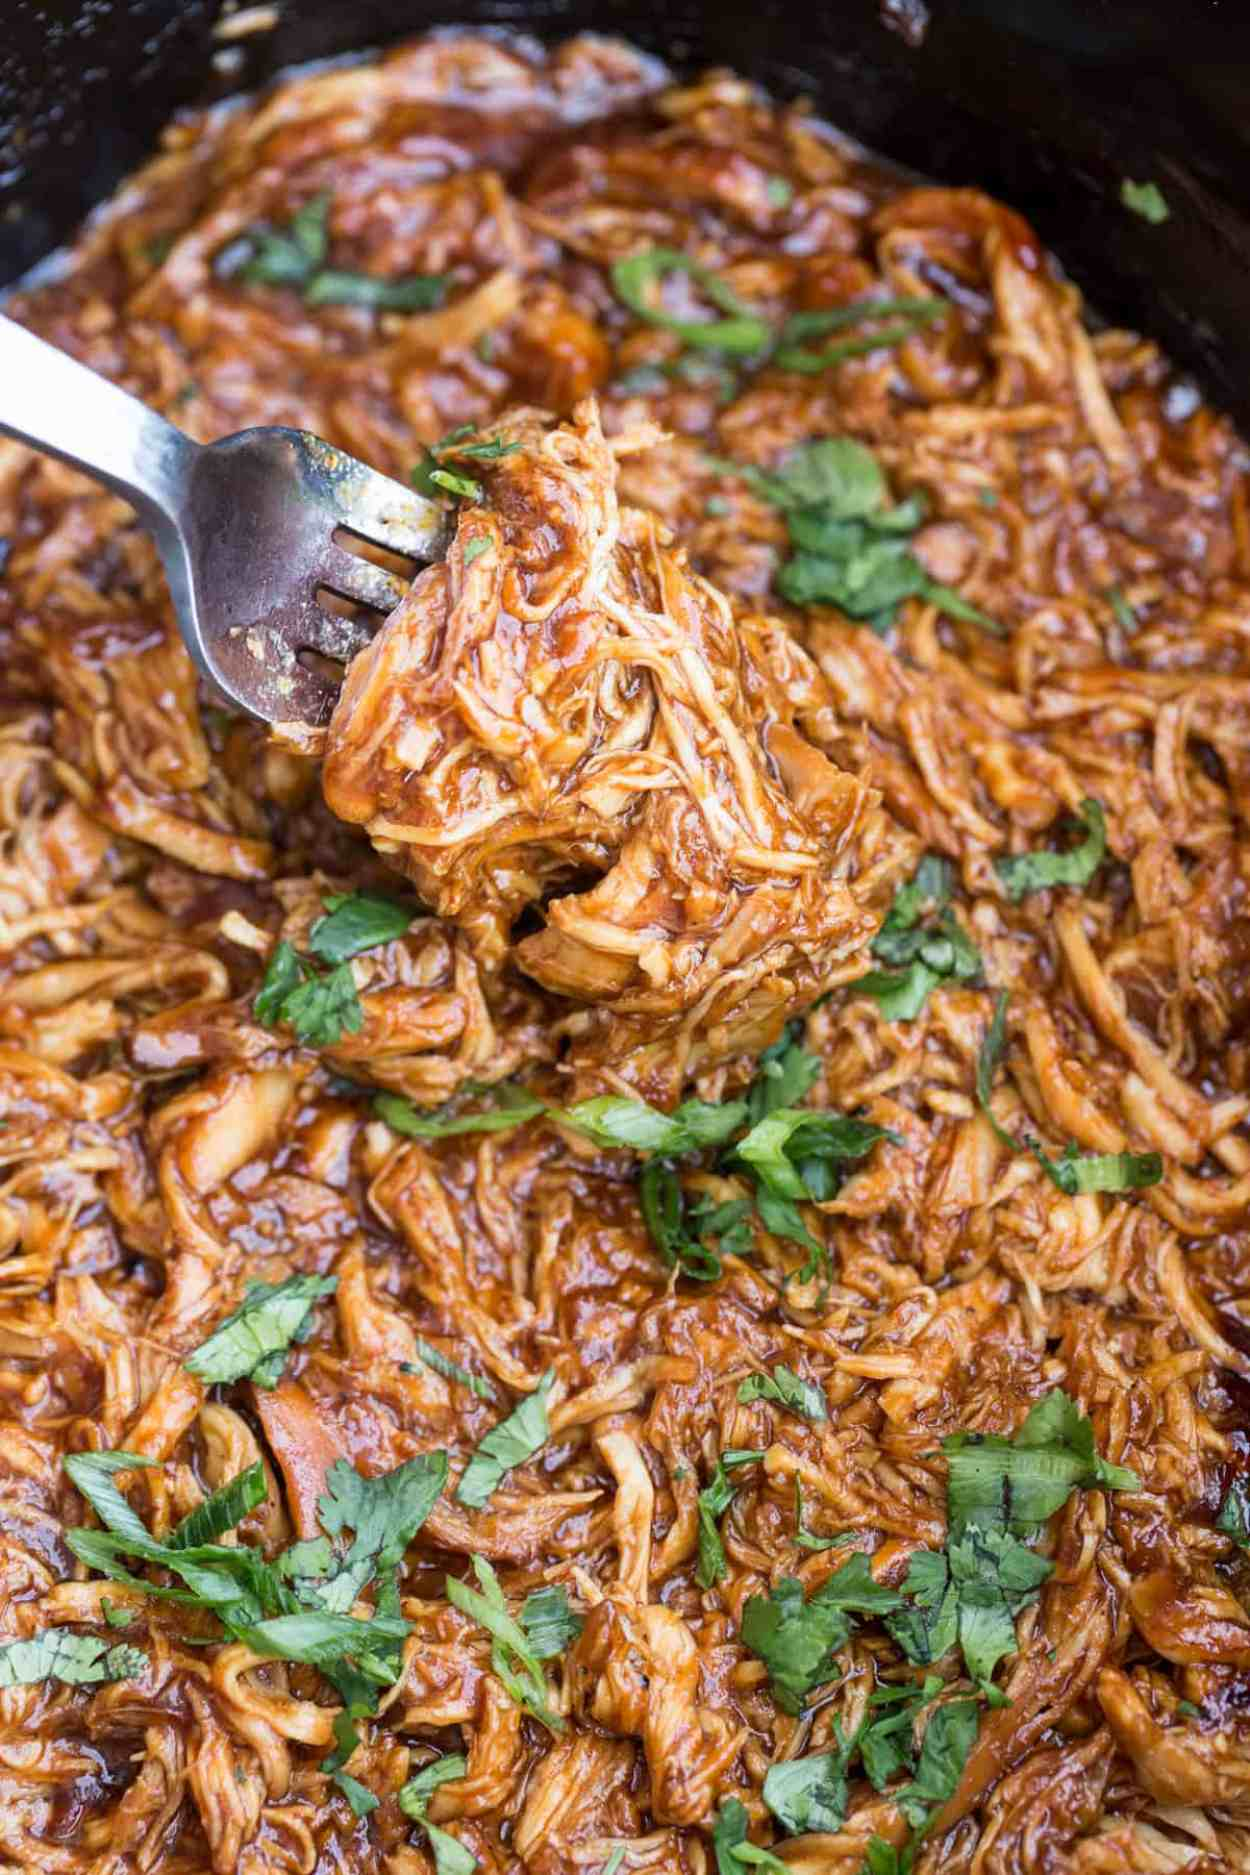 BBQ pulled chicken in a crock pot with a pork topped with fresh greens.